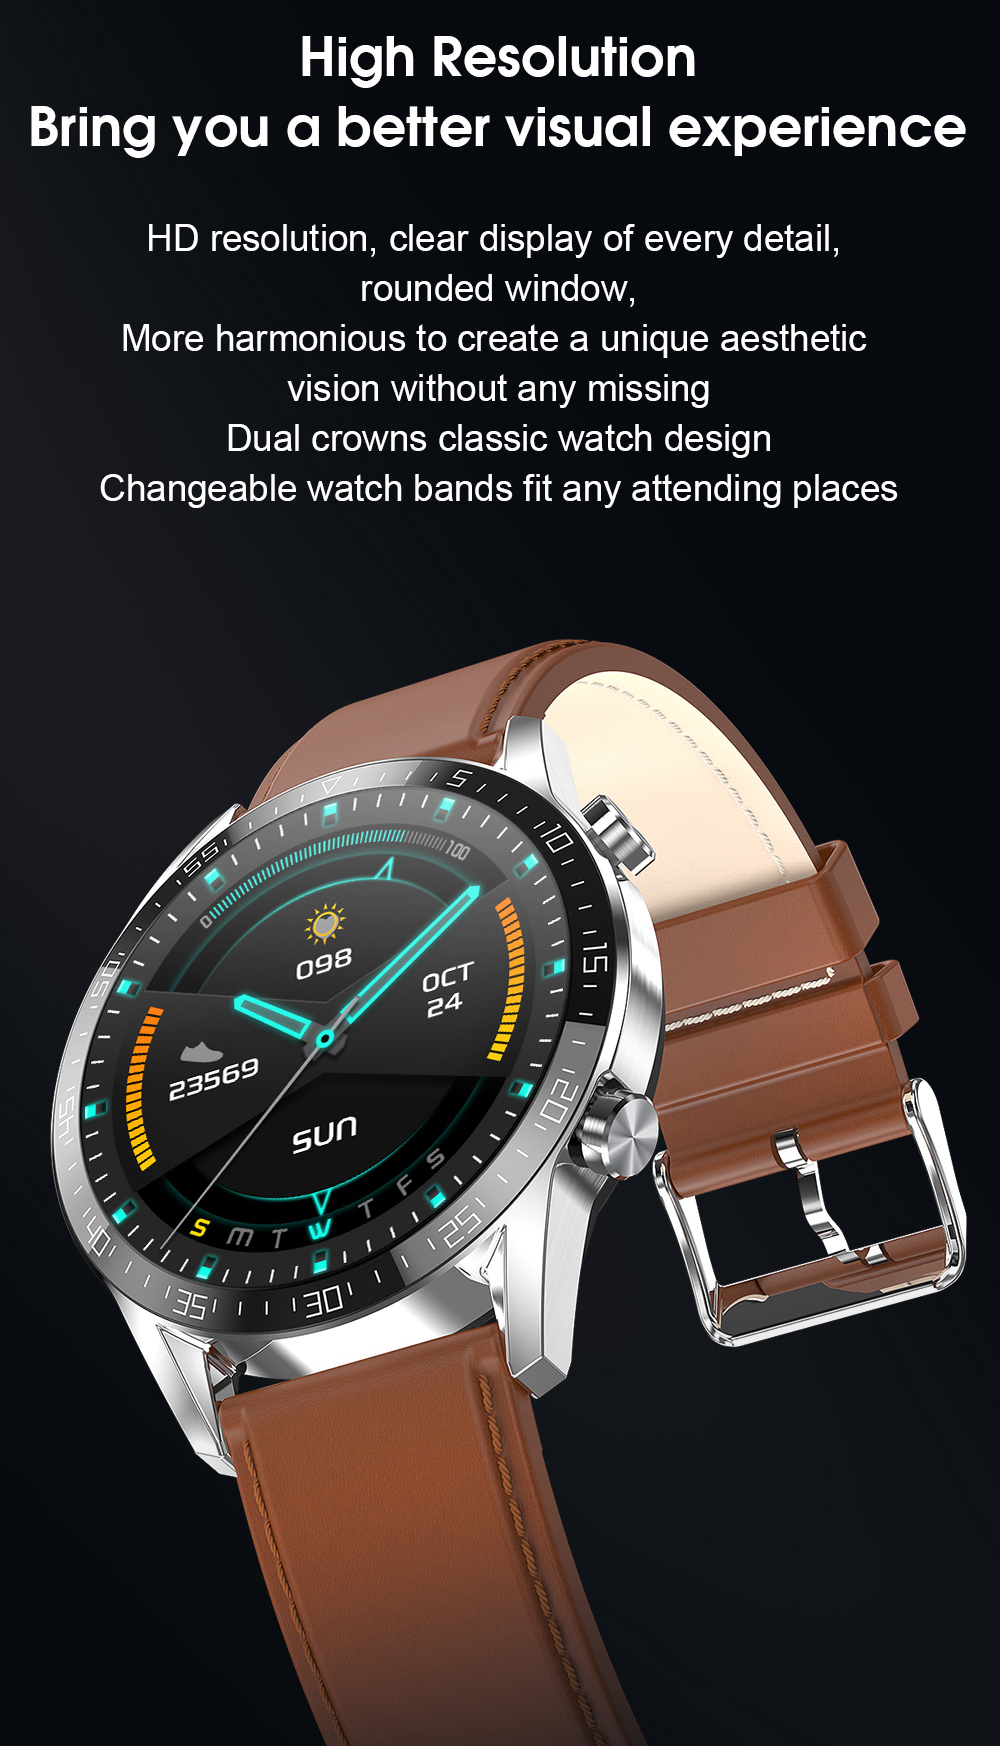 H11b4b09ca6f94d25a982a4c115f1f7b2T Timewolf IP68 Smart Watch Men Android 2020 Full Touch Smartwatch Men Women Smart Watch For Huawei Xiaomi Apple IOS Android Phone